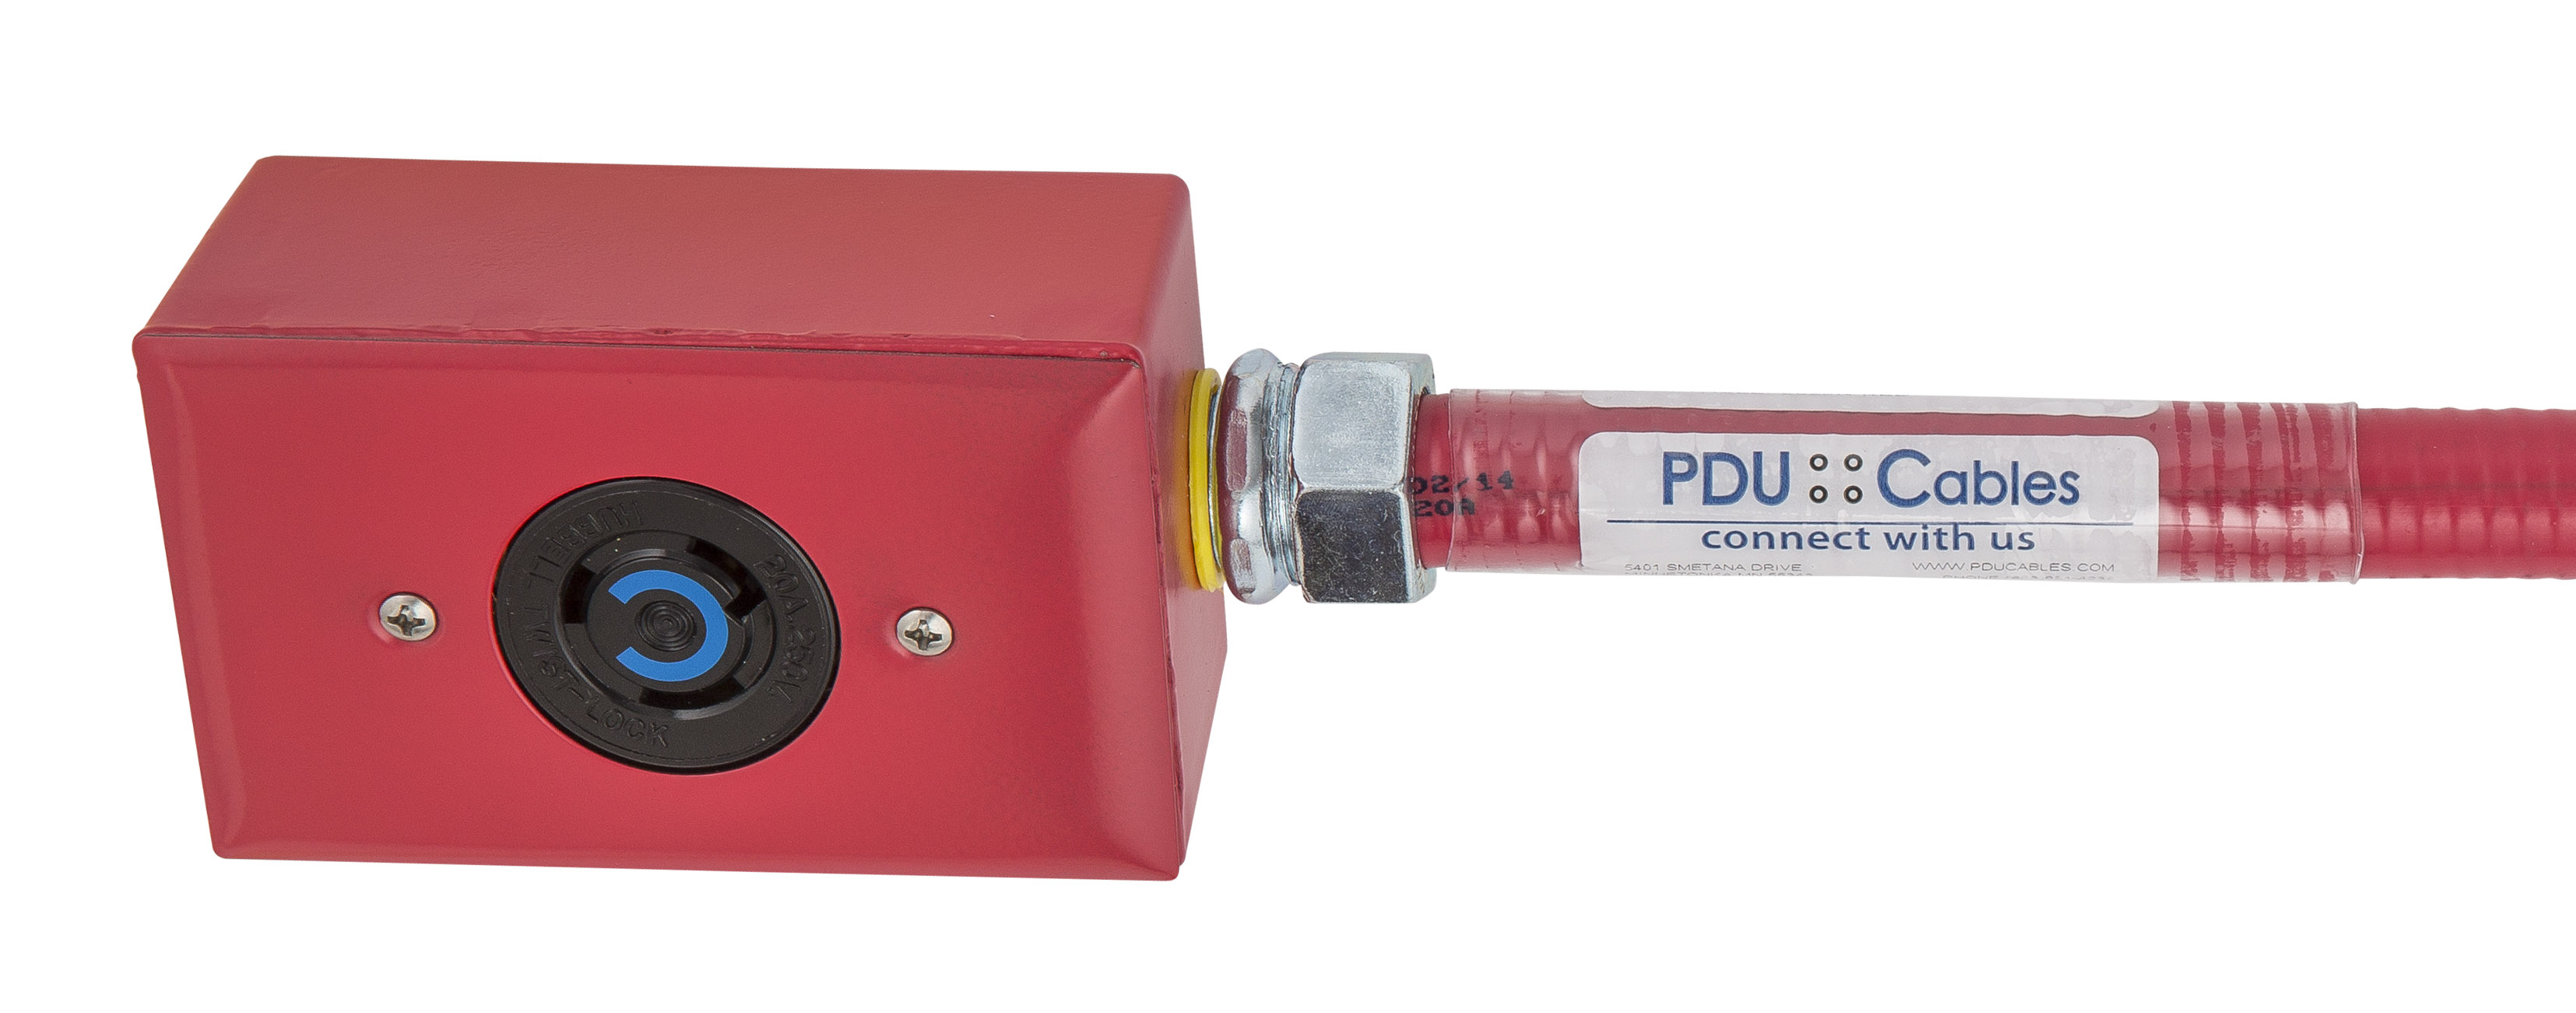 NEMA Standard Locking cable plug and receptacle for data center under floor power cable assemblies.